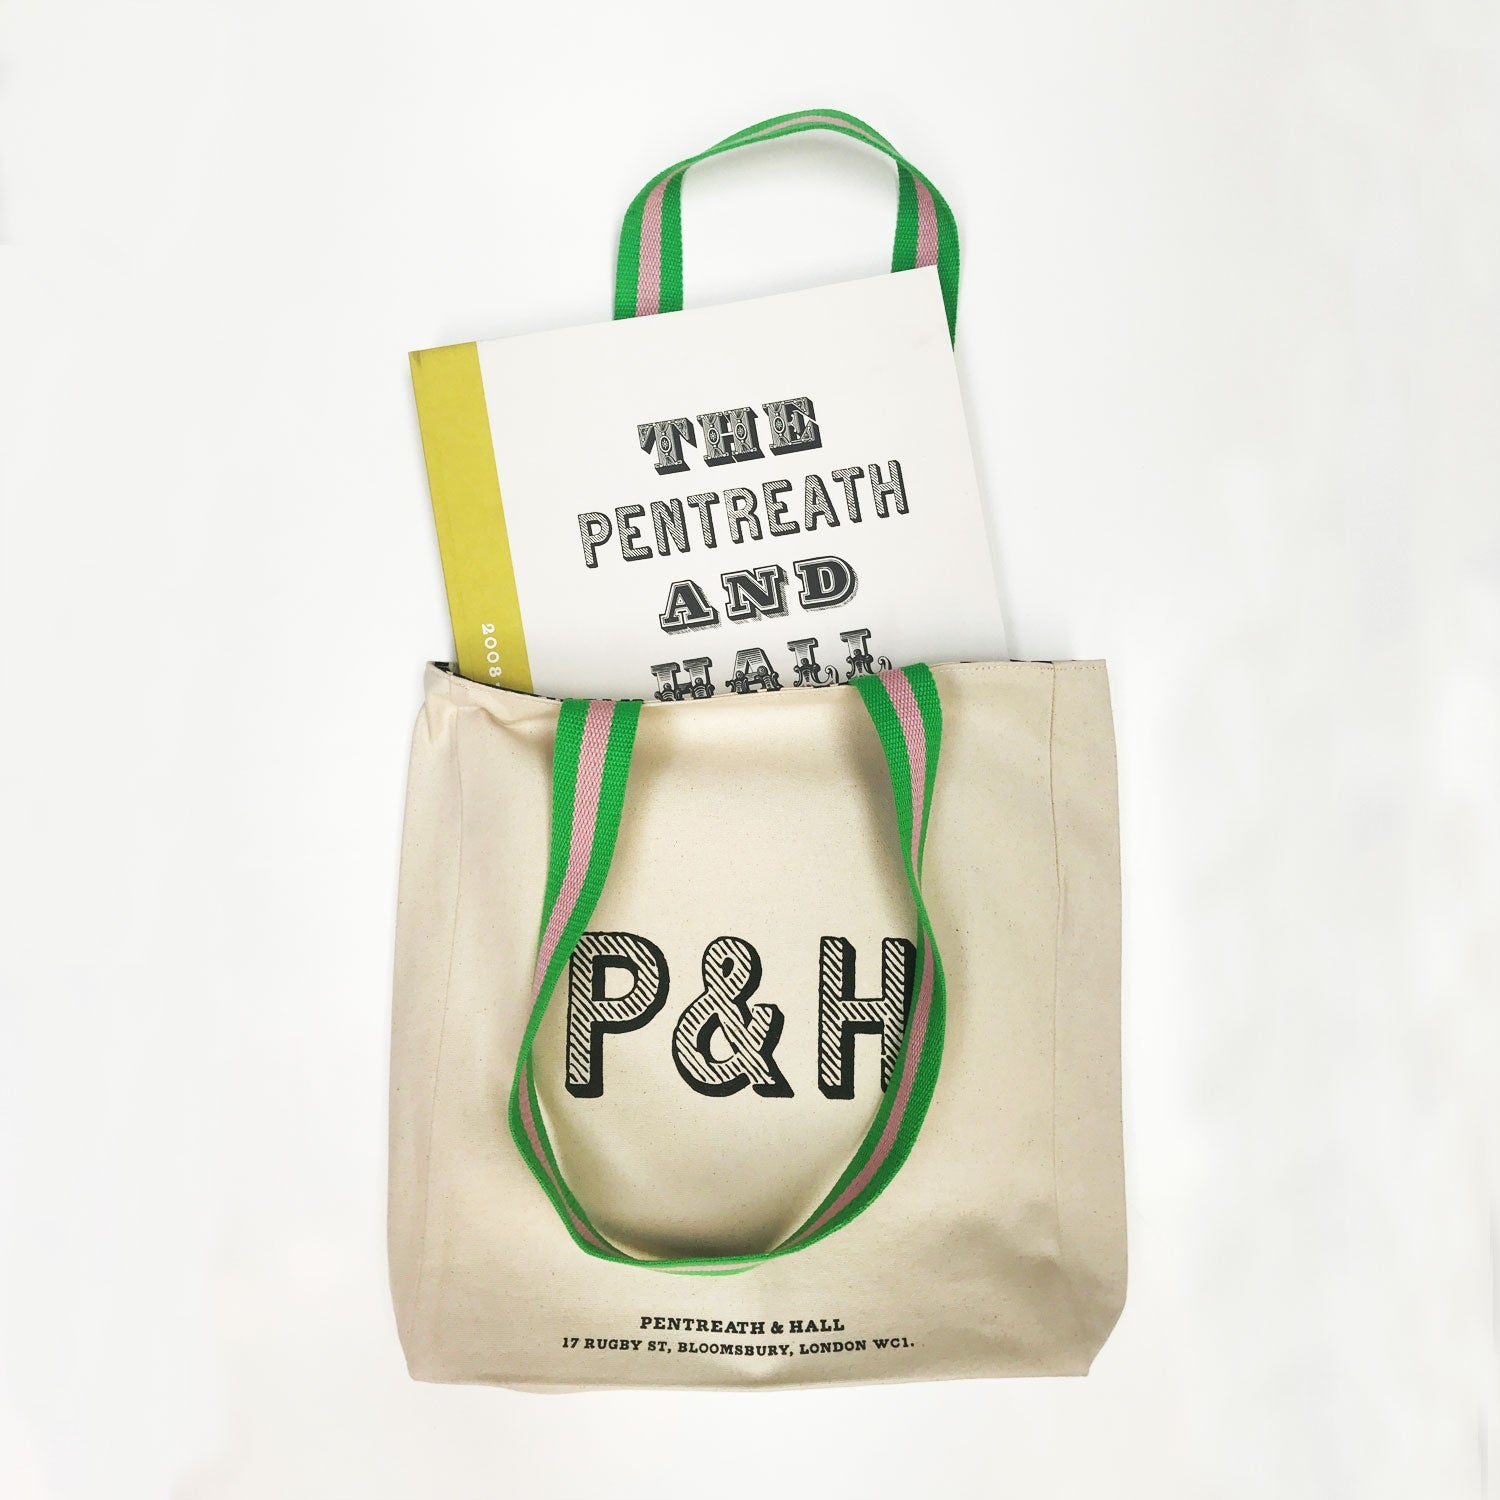 SPECIAL OFFER: The Pentreath & Hall Alphabet Book and Book Bag